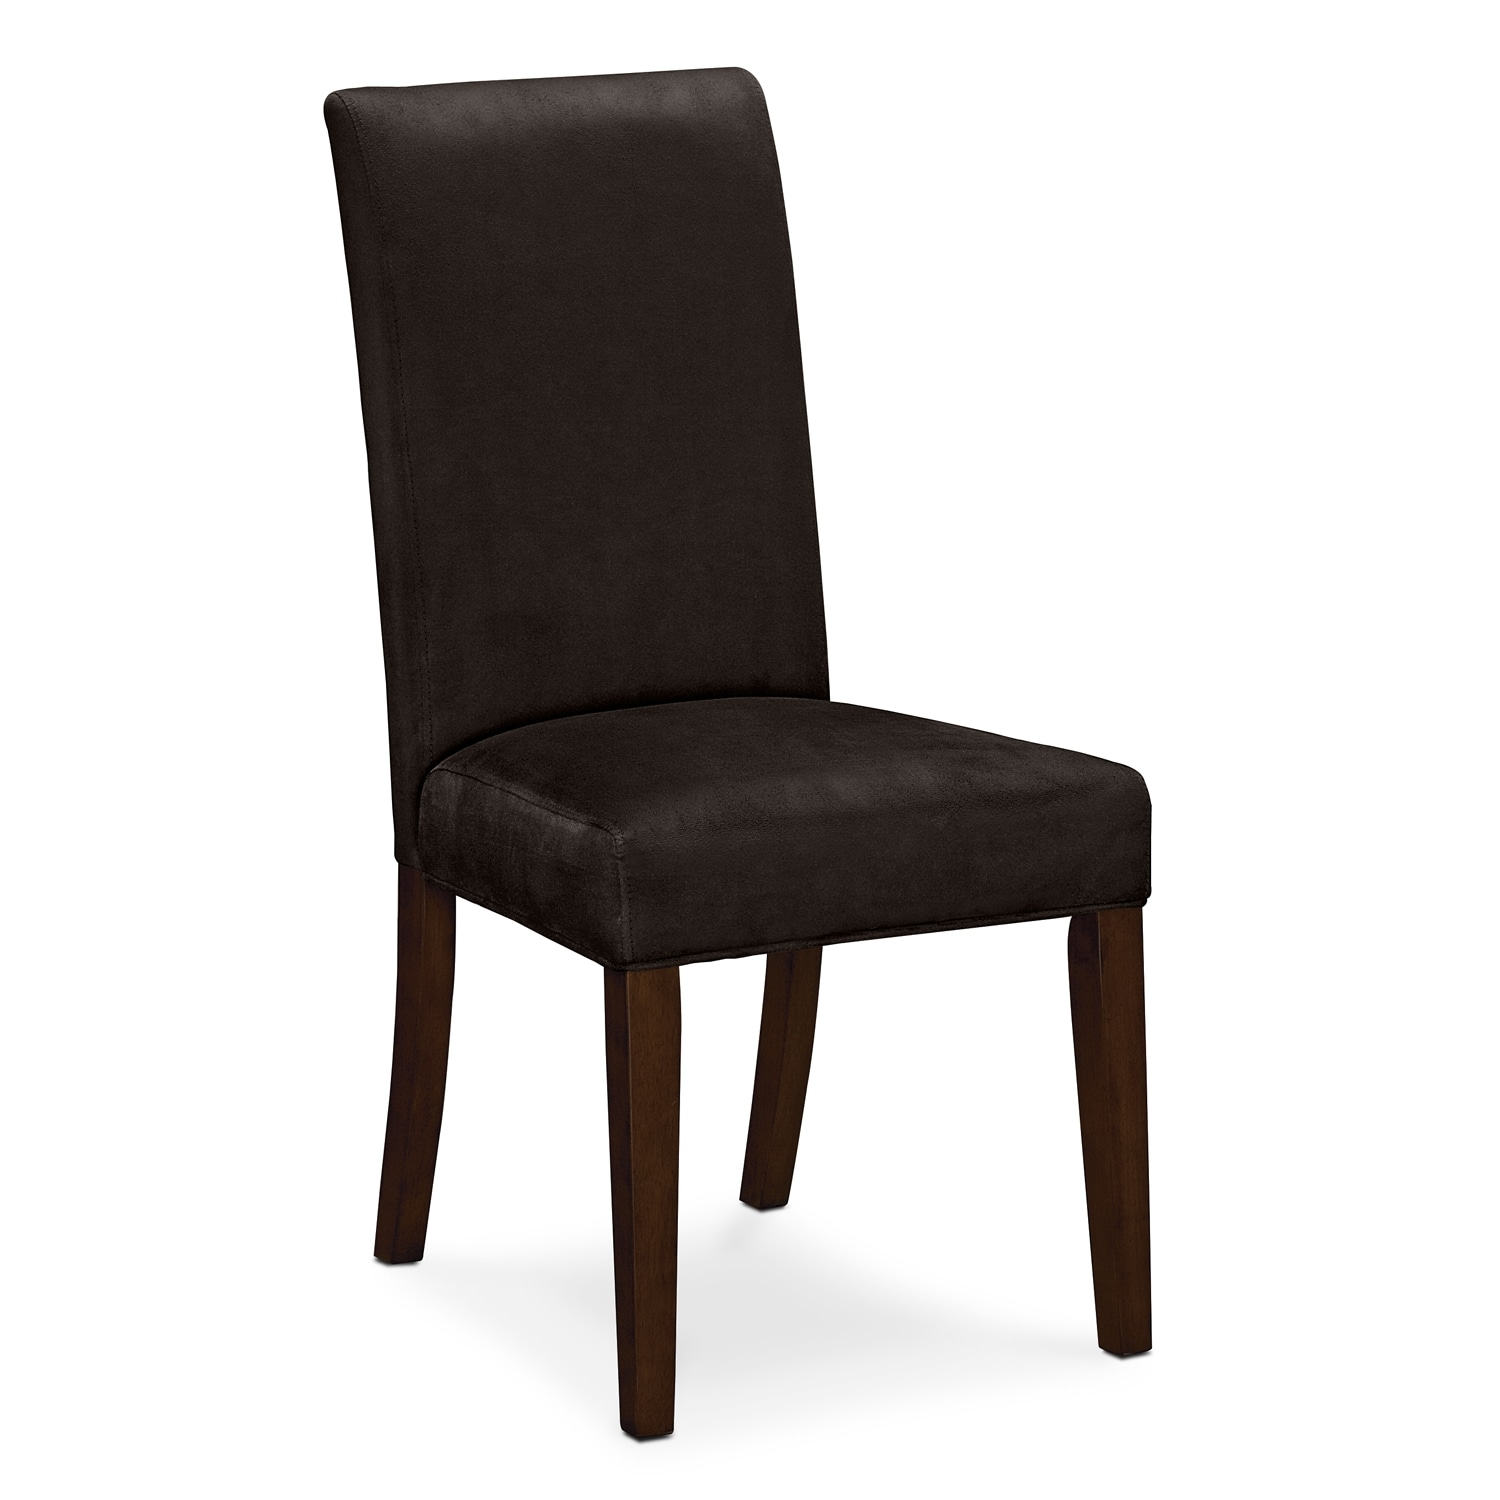 Dining Room Furniture - Daly Chocolate Chair